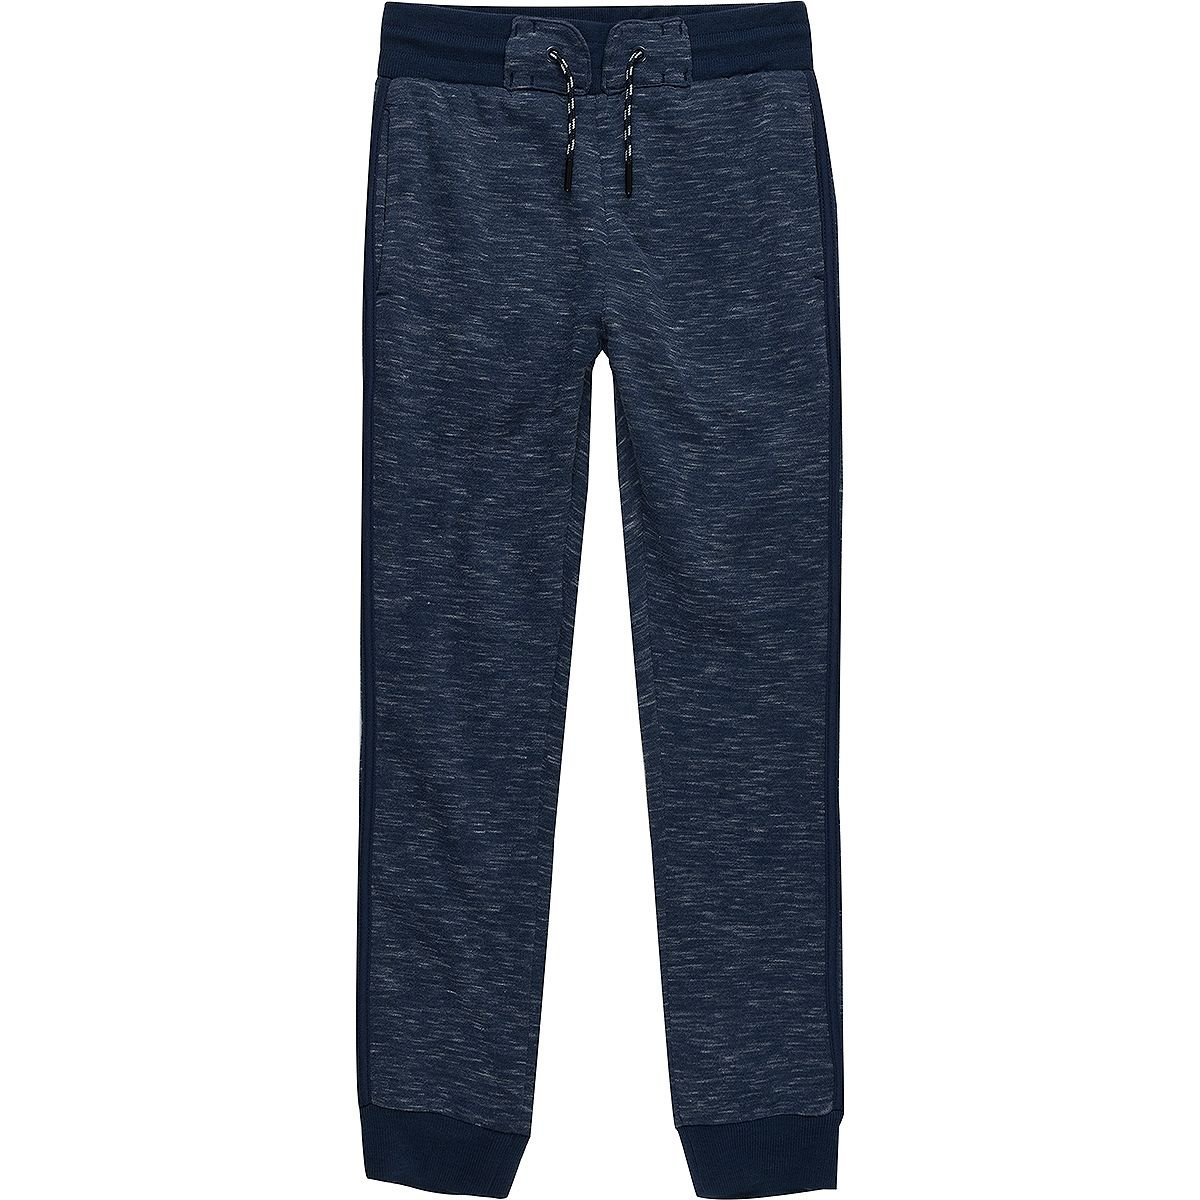 Burnside Fleece Pant - Boys' Navy, L